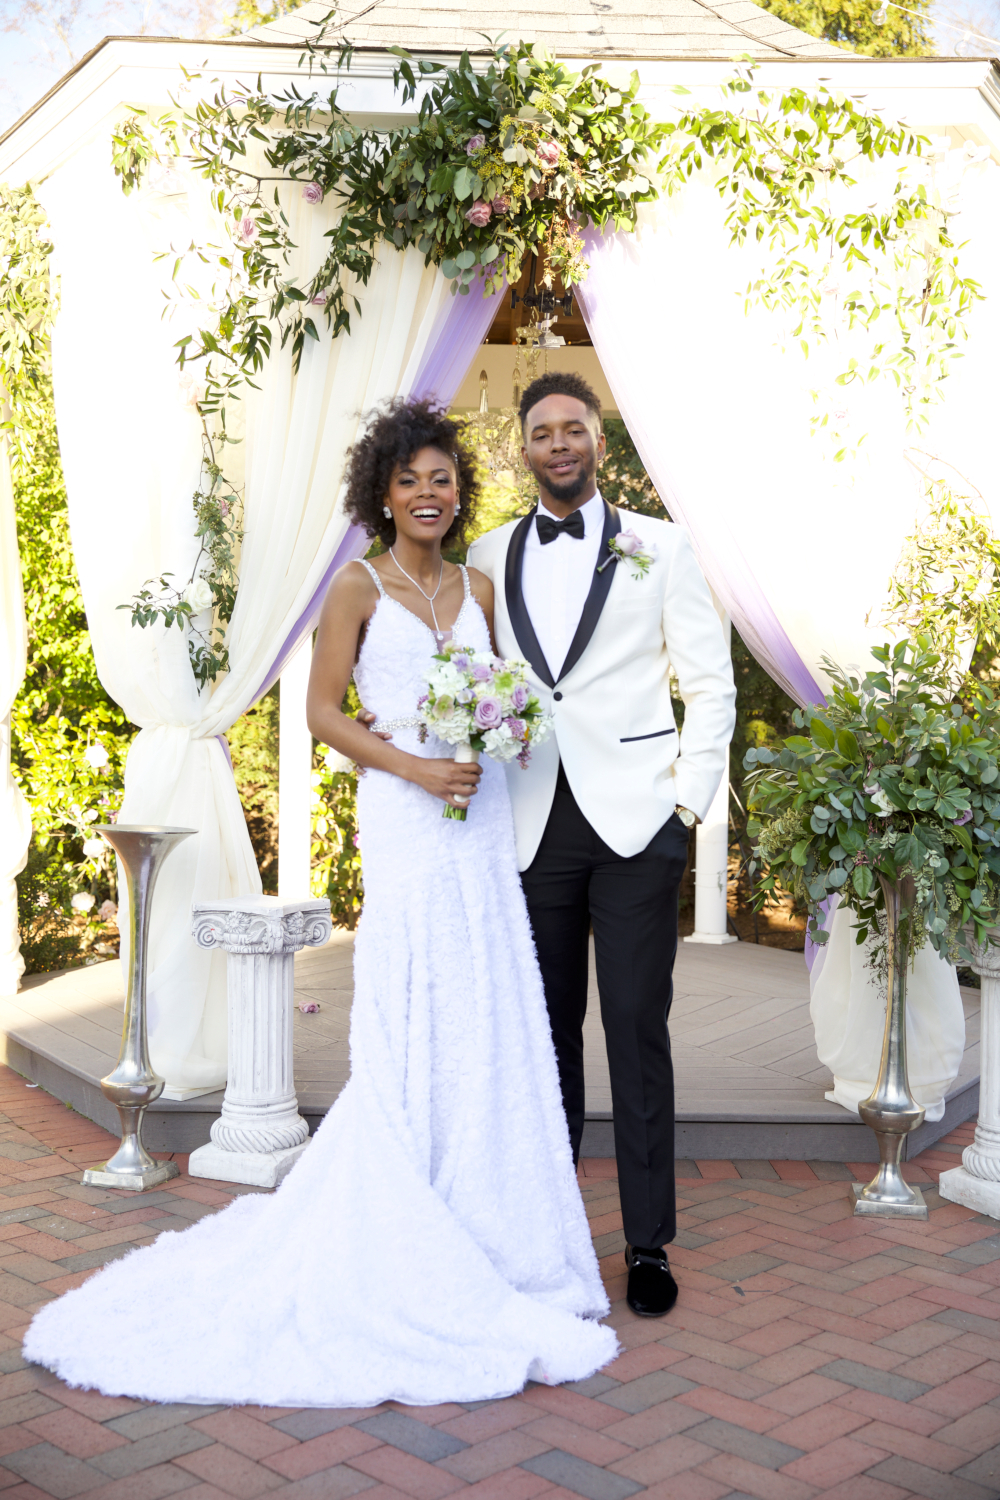 Married at First Sight cast Season 9